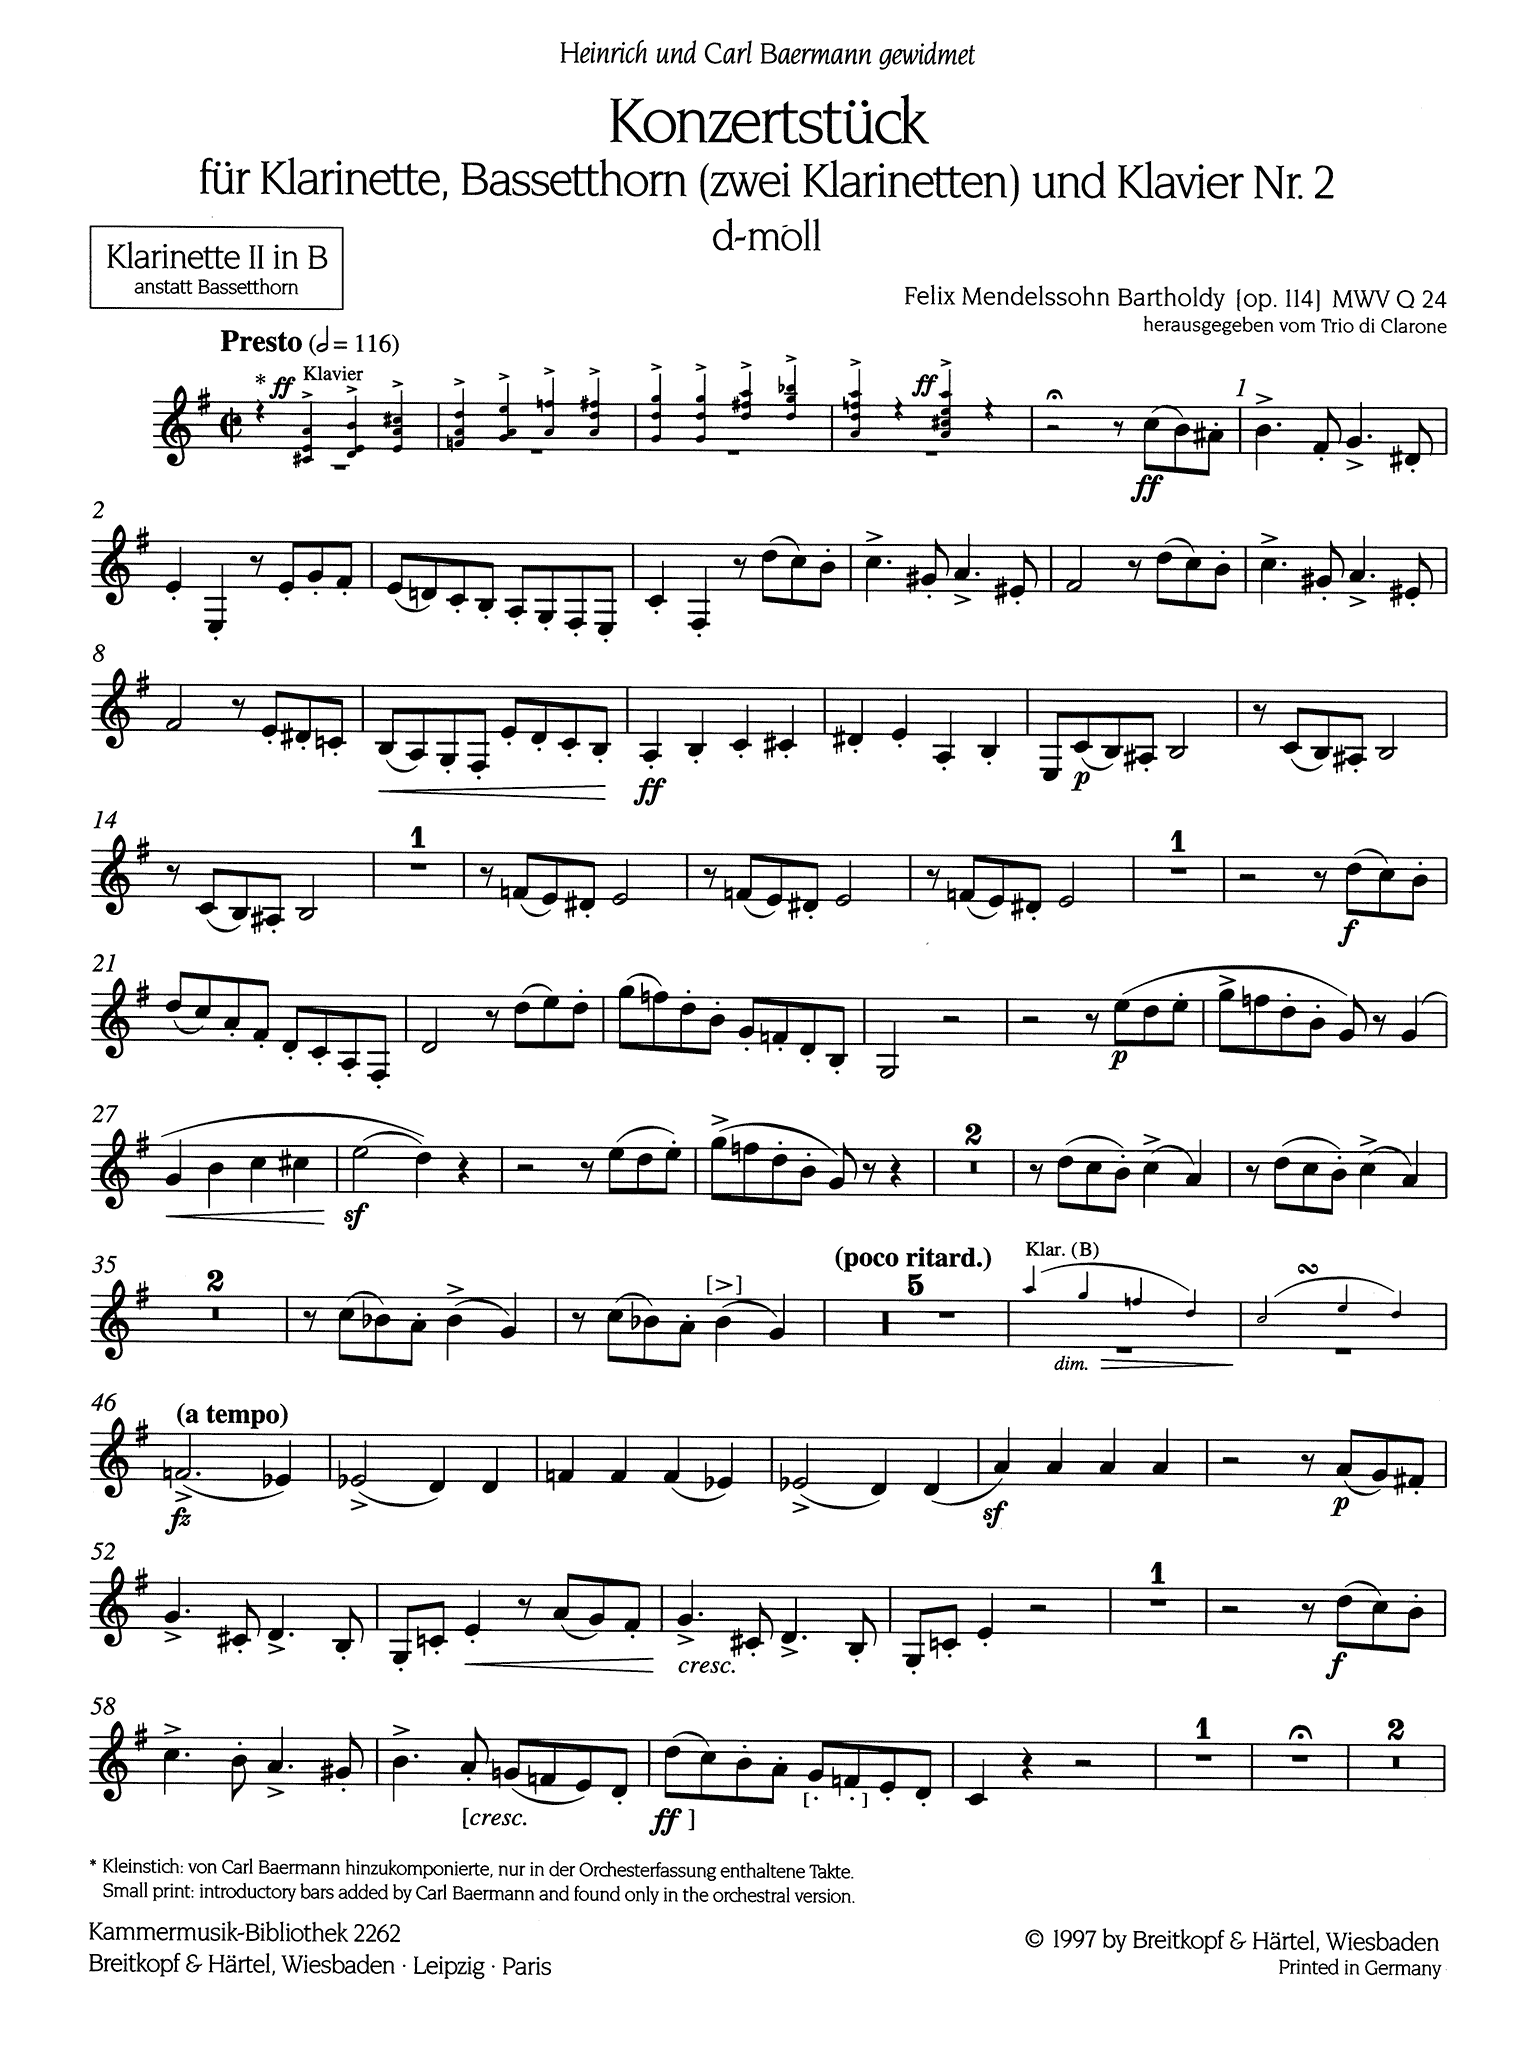 Concertpiece No. 2 in D Minor, Op. 114 B-flat Clarinet second solo part